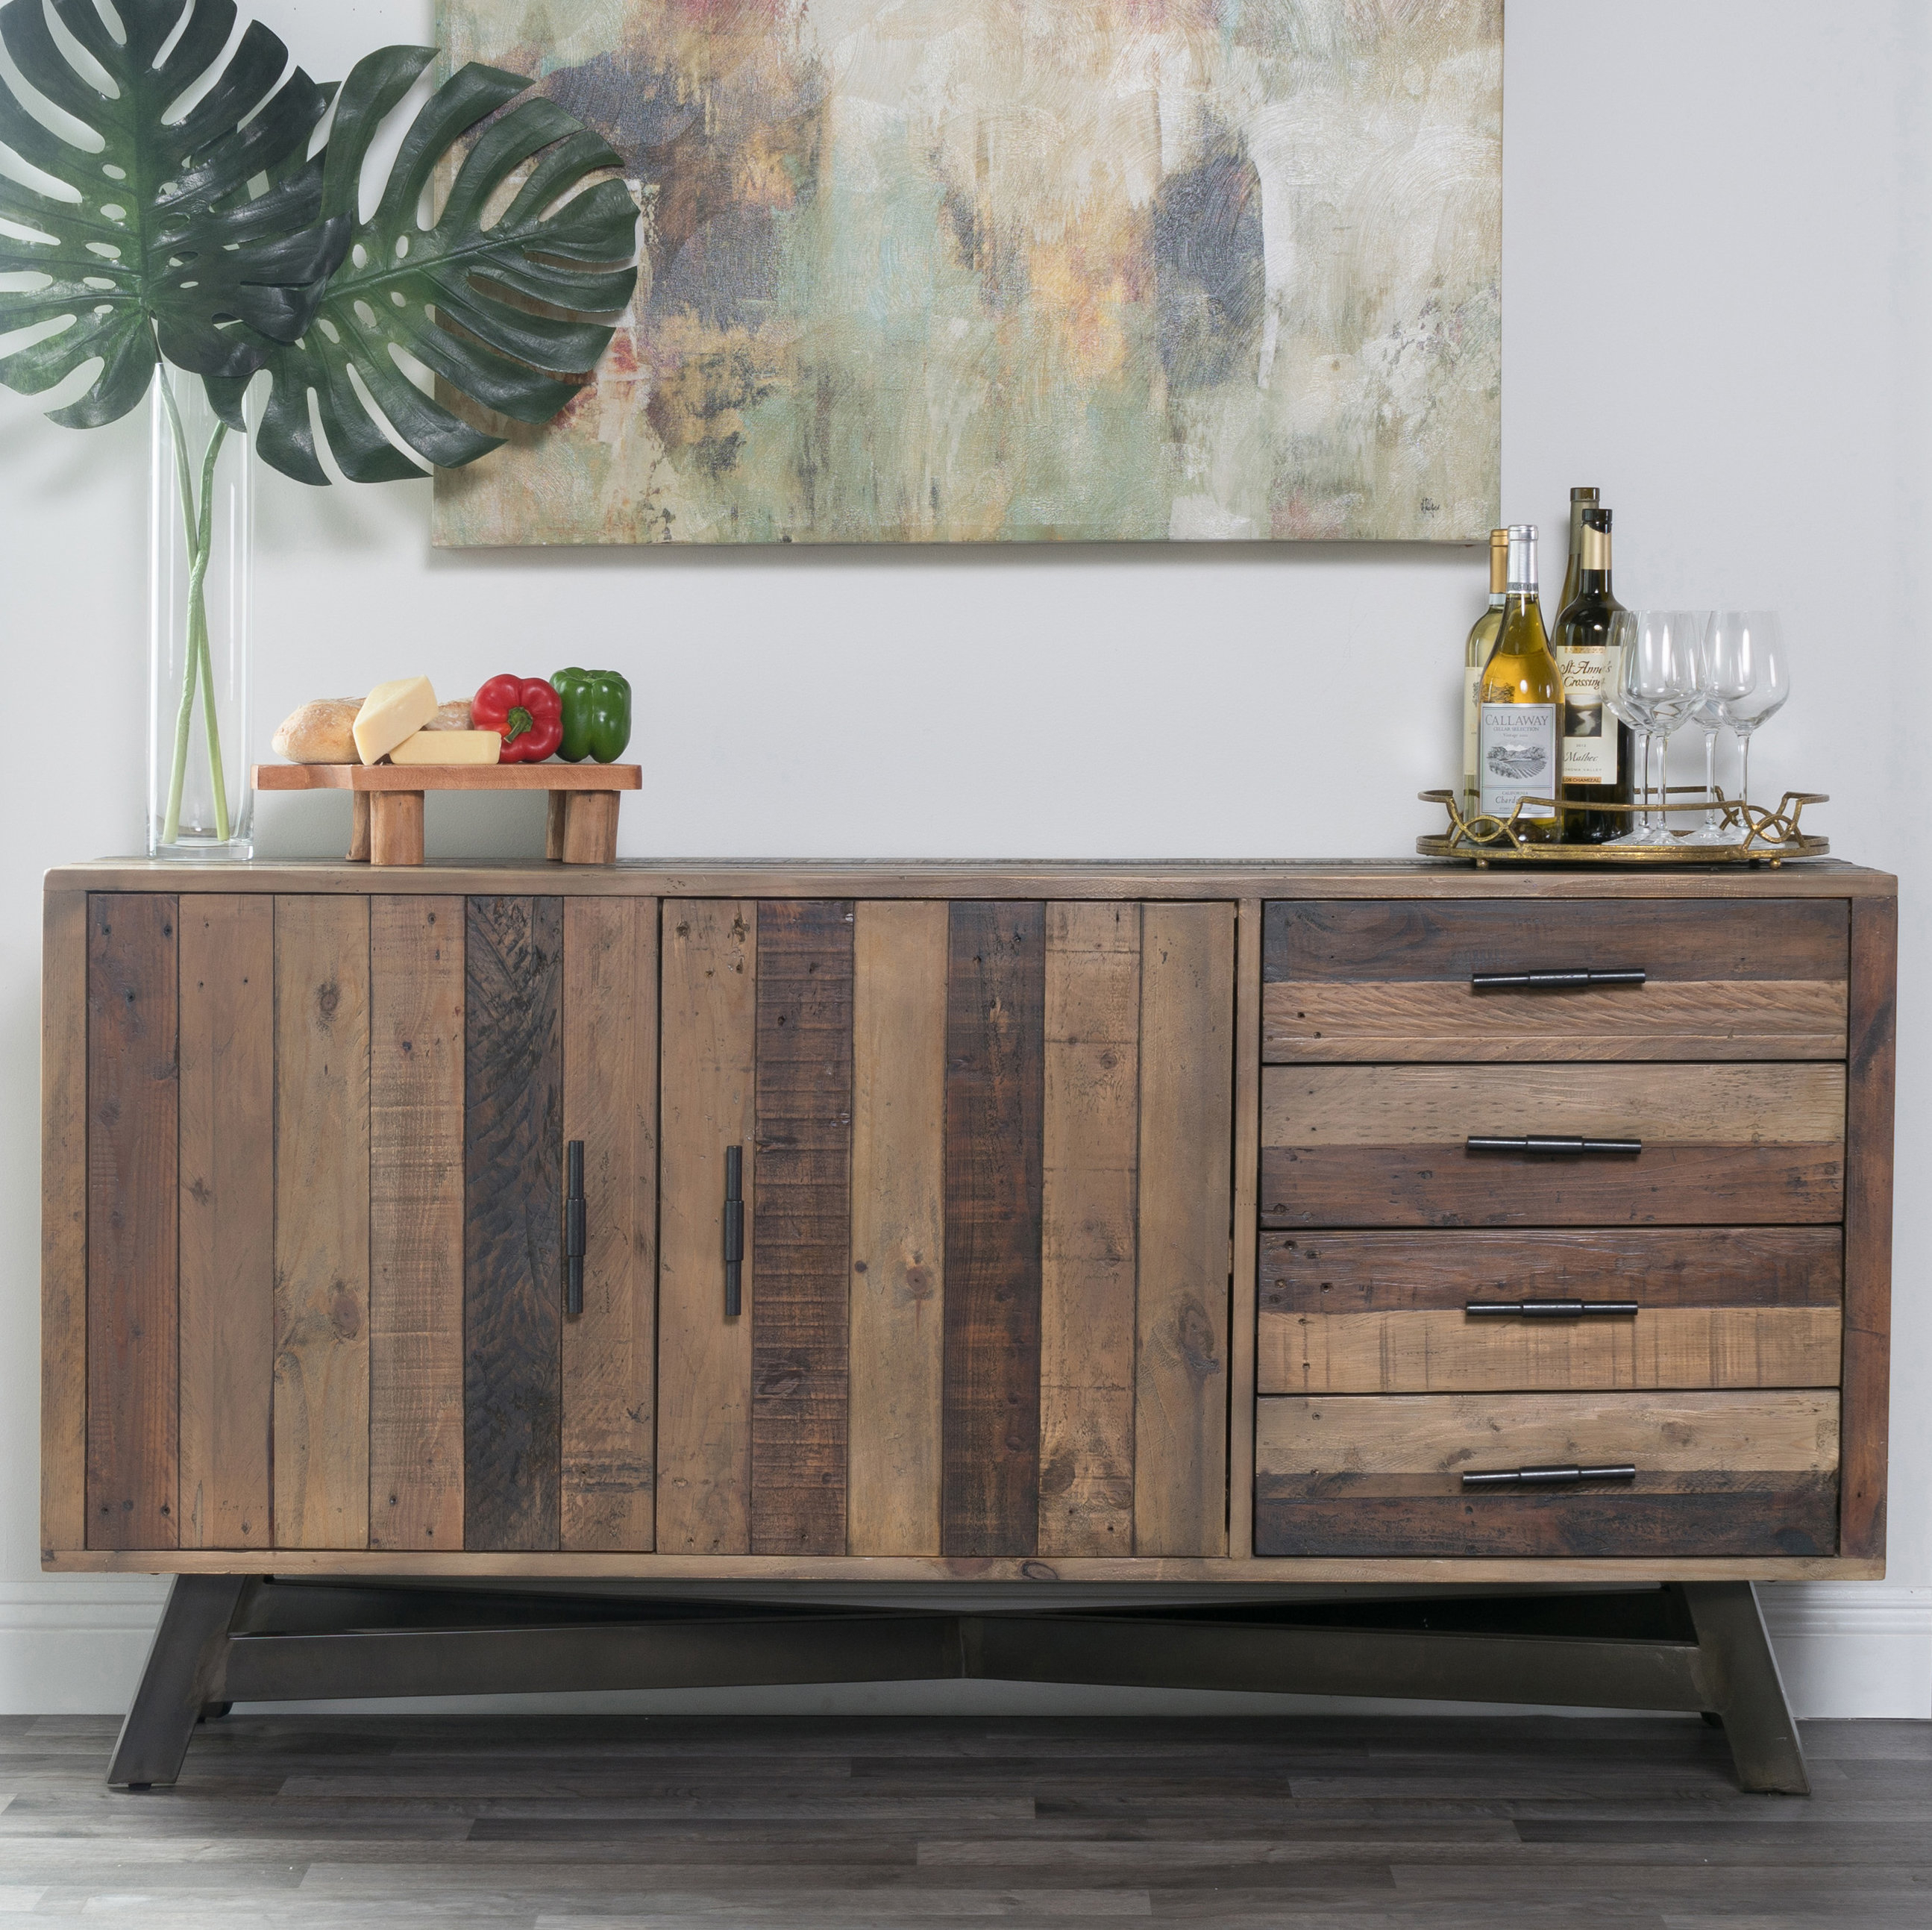 Farmhouse & Rustic Medium Brown Wood Sideboards & Buffets With Regard To 2018 Chaffins Sideboards (#9 of 20)